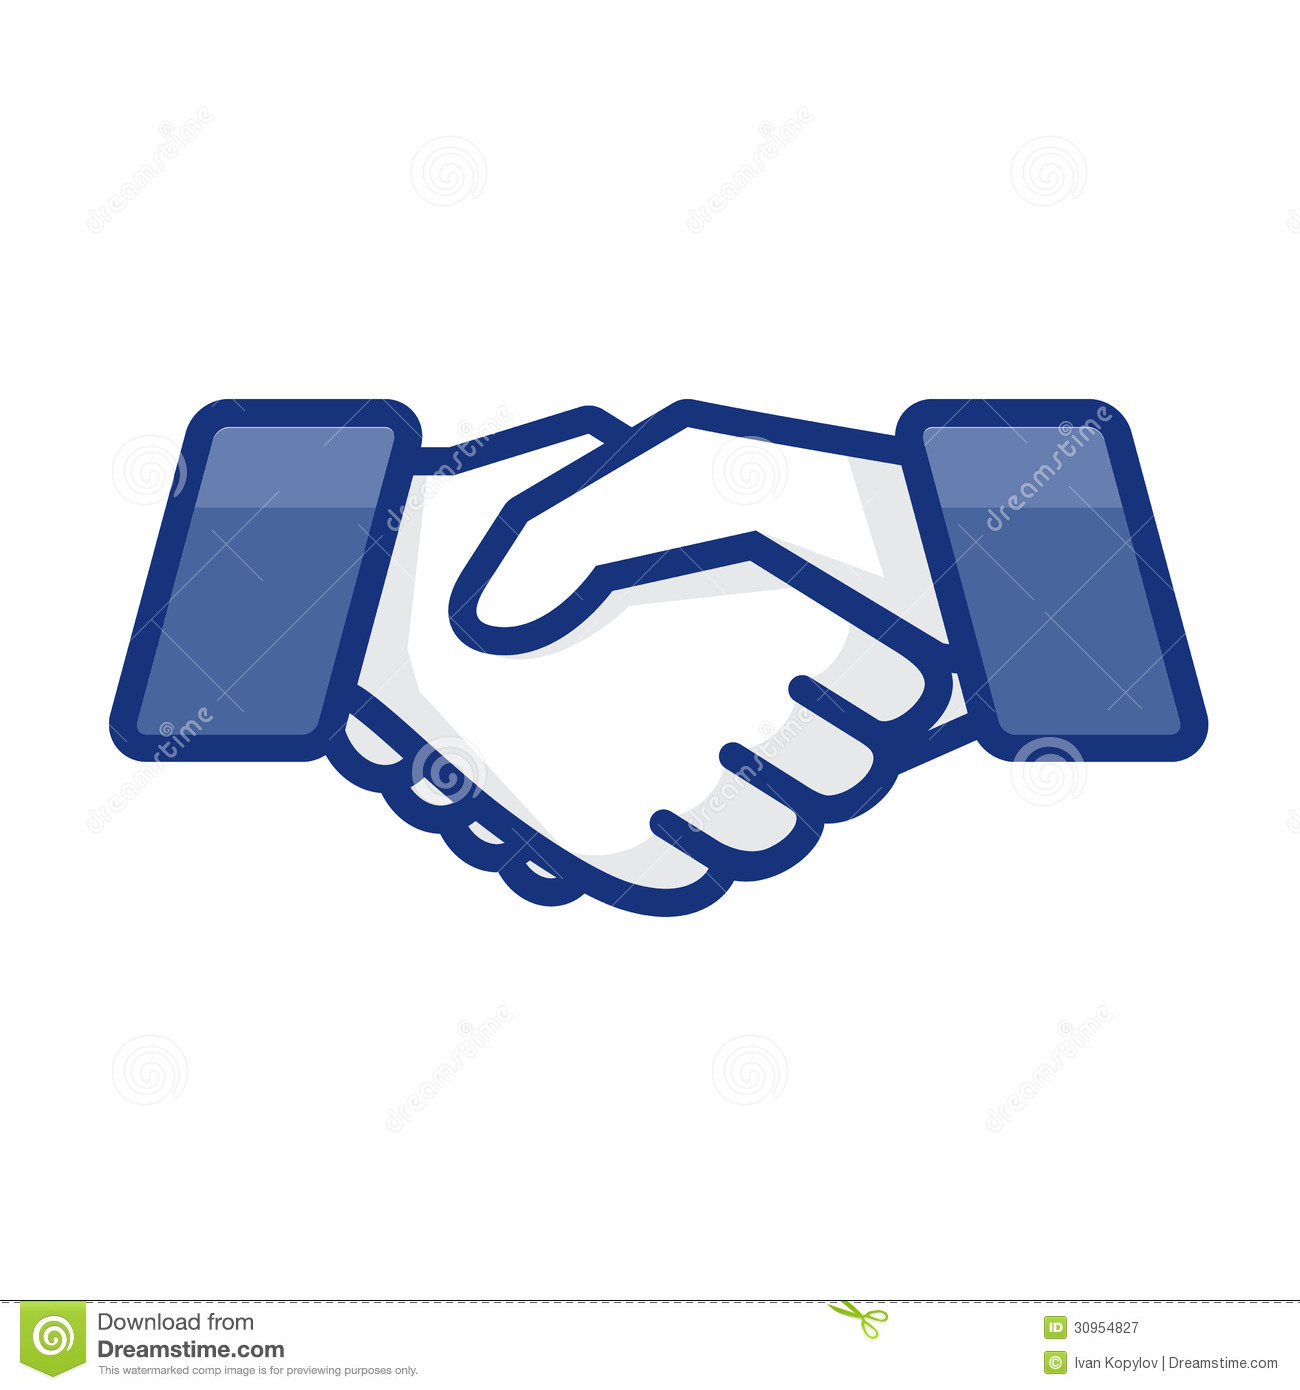 19 Shaking Finger No Icon Images - Shaking Hands Icon ...